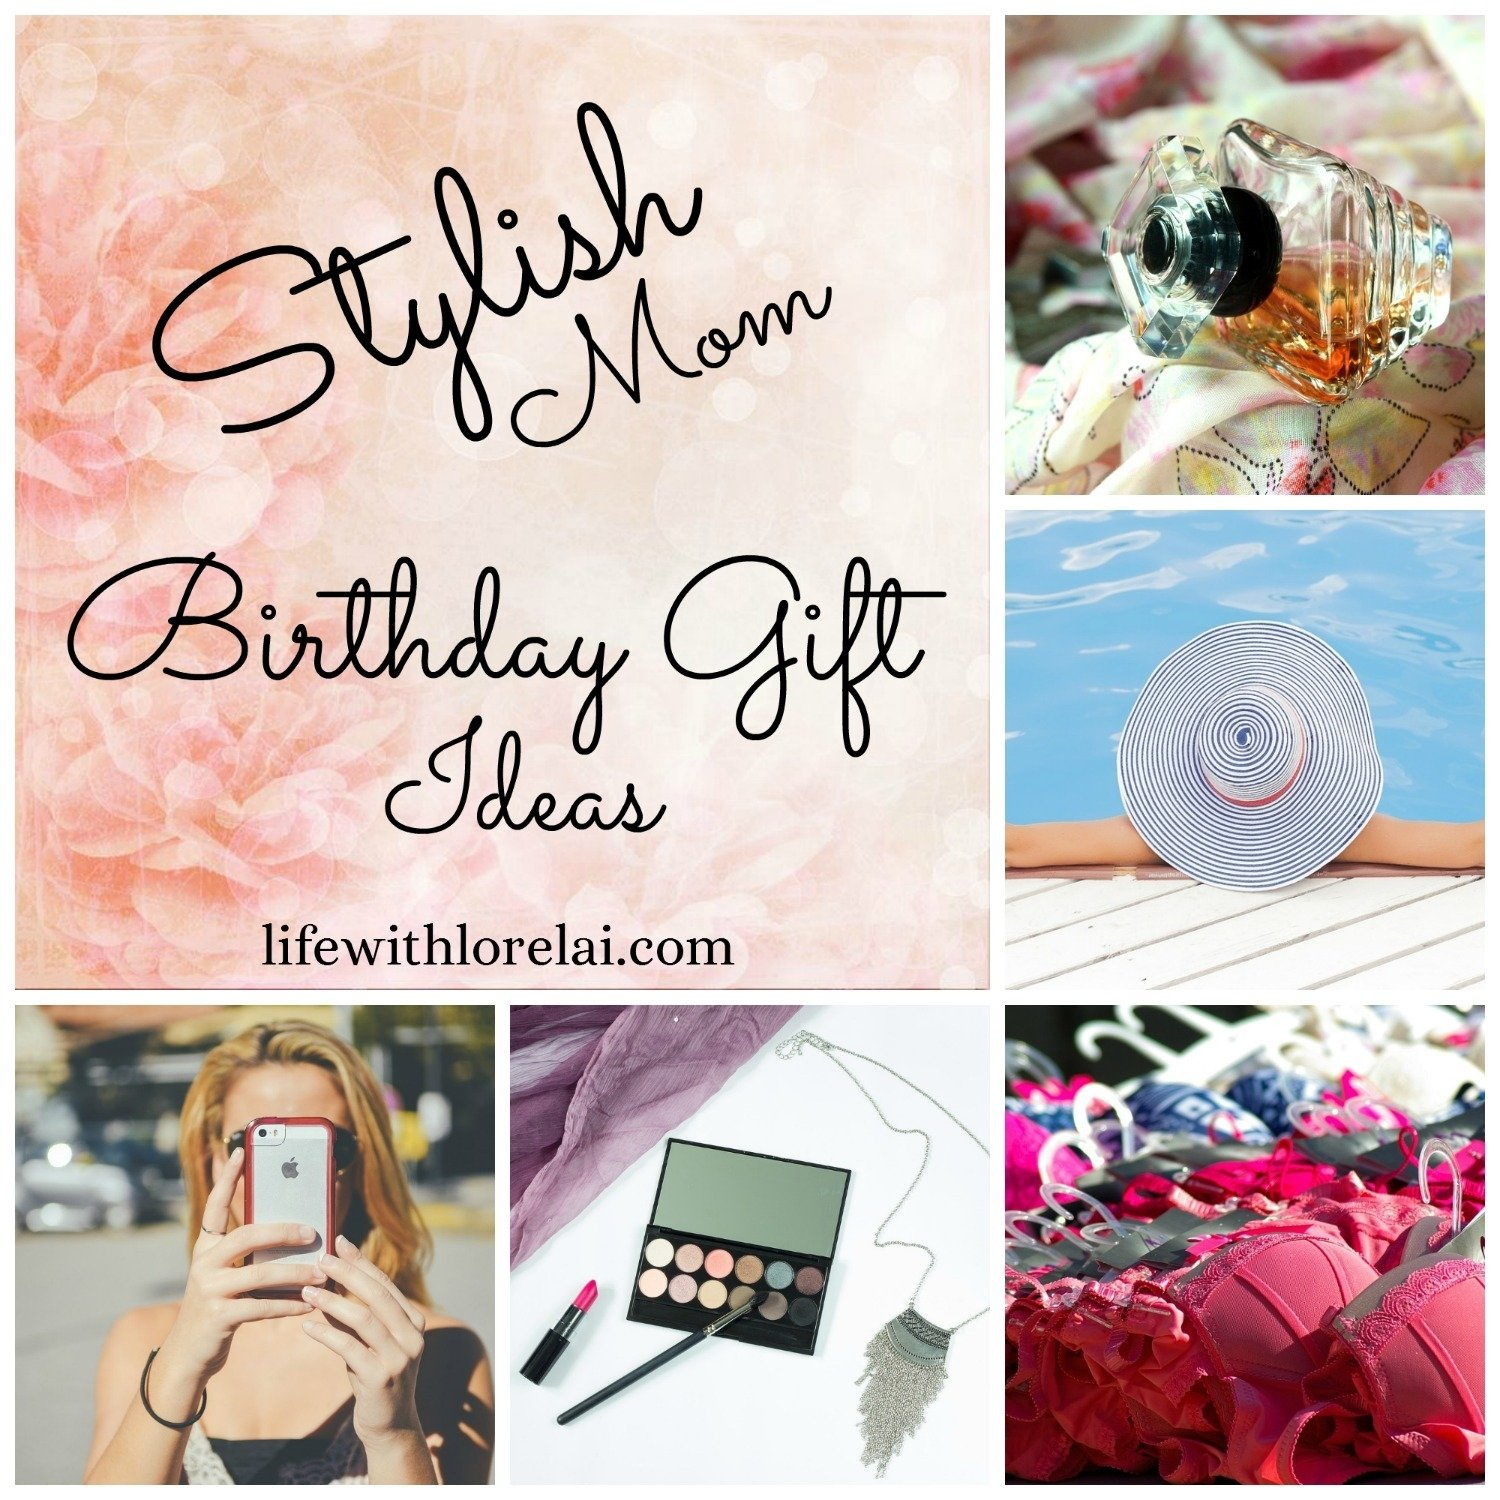 10 Unique Gift Ideas For Mom Birthday birthday gift ideas for the stylish mom life with lorelai 9 2021